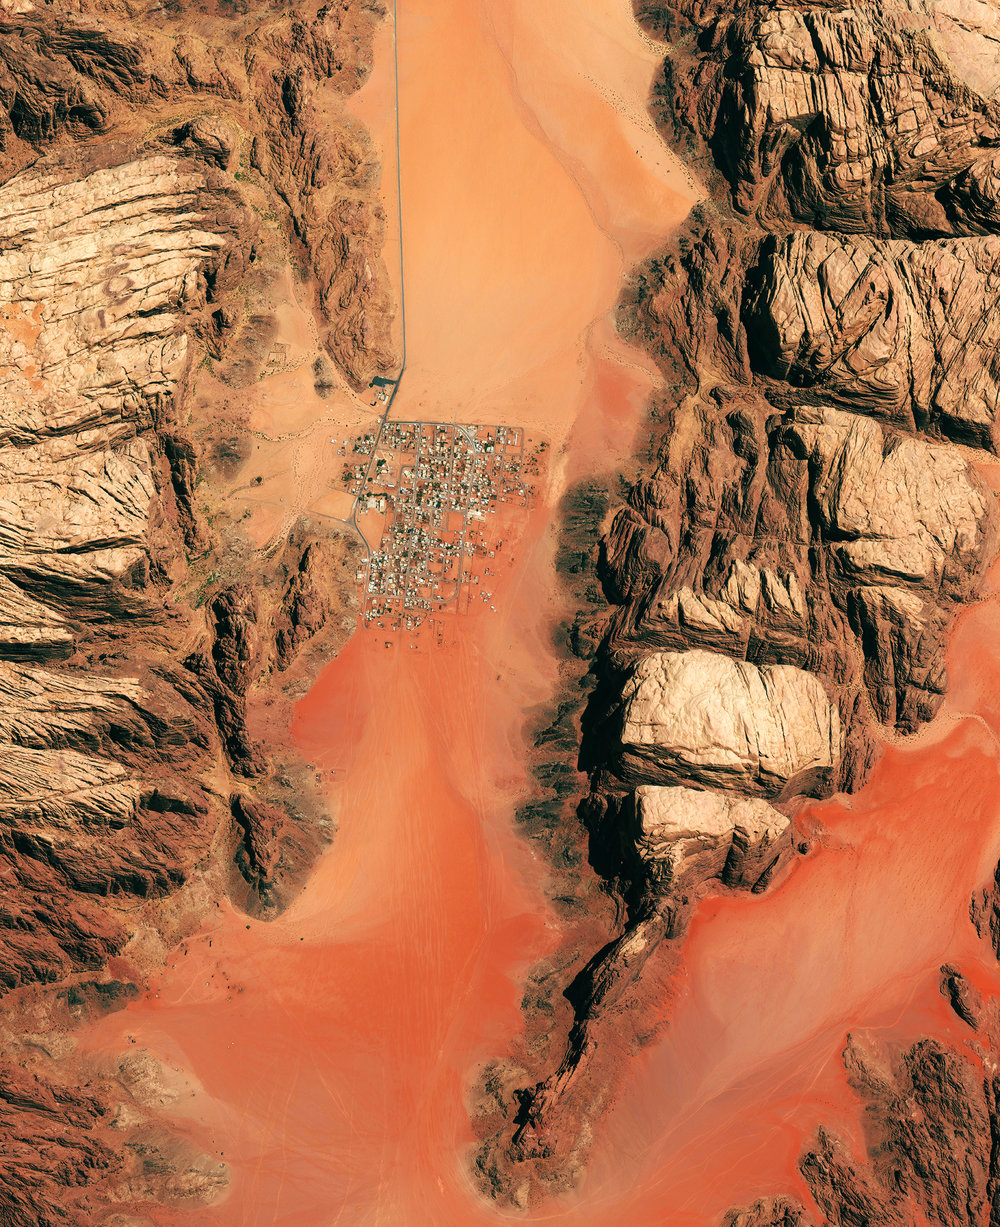 5/19/2017 Wadi Rum Jordan 29.572469, 35.420807 Wadi Rum is a village in Jordan that has been populated by humans since prehistoric times (8th century BC). Early inhabitants left they mark in the form of rock paintings which have been thoroughly analyzed by historians. The area has also served as a film set for movies such as The Martian, and Star Wars Rouge One. Source imagery: DigitalGlobe